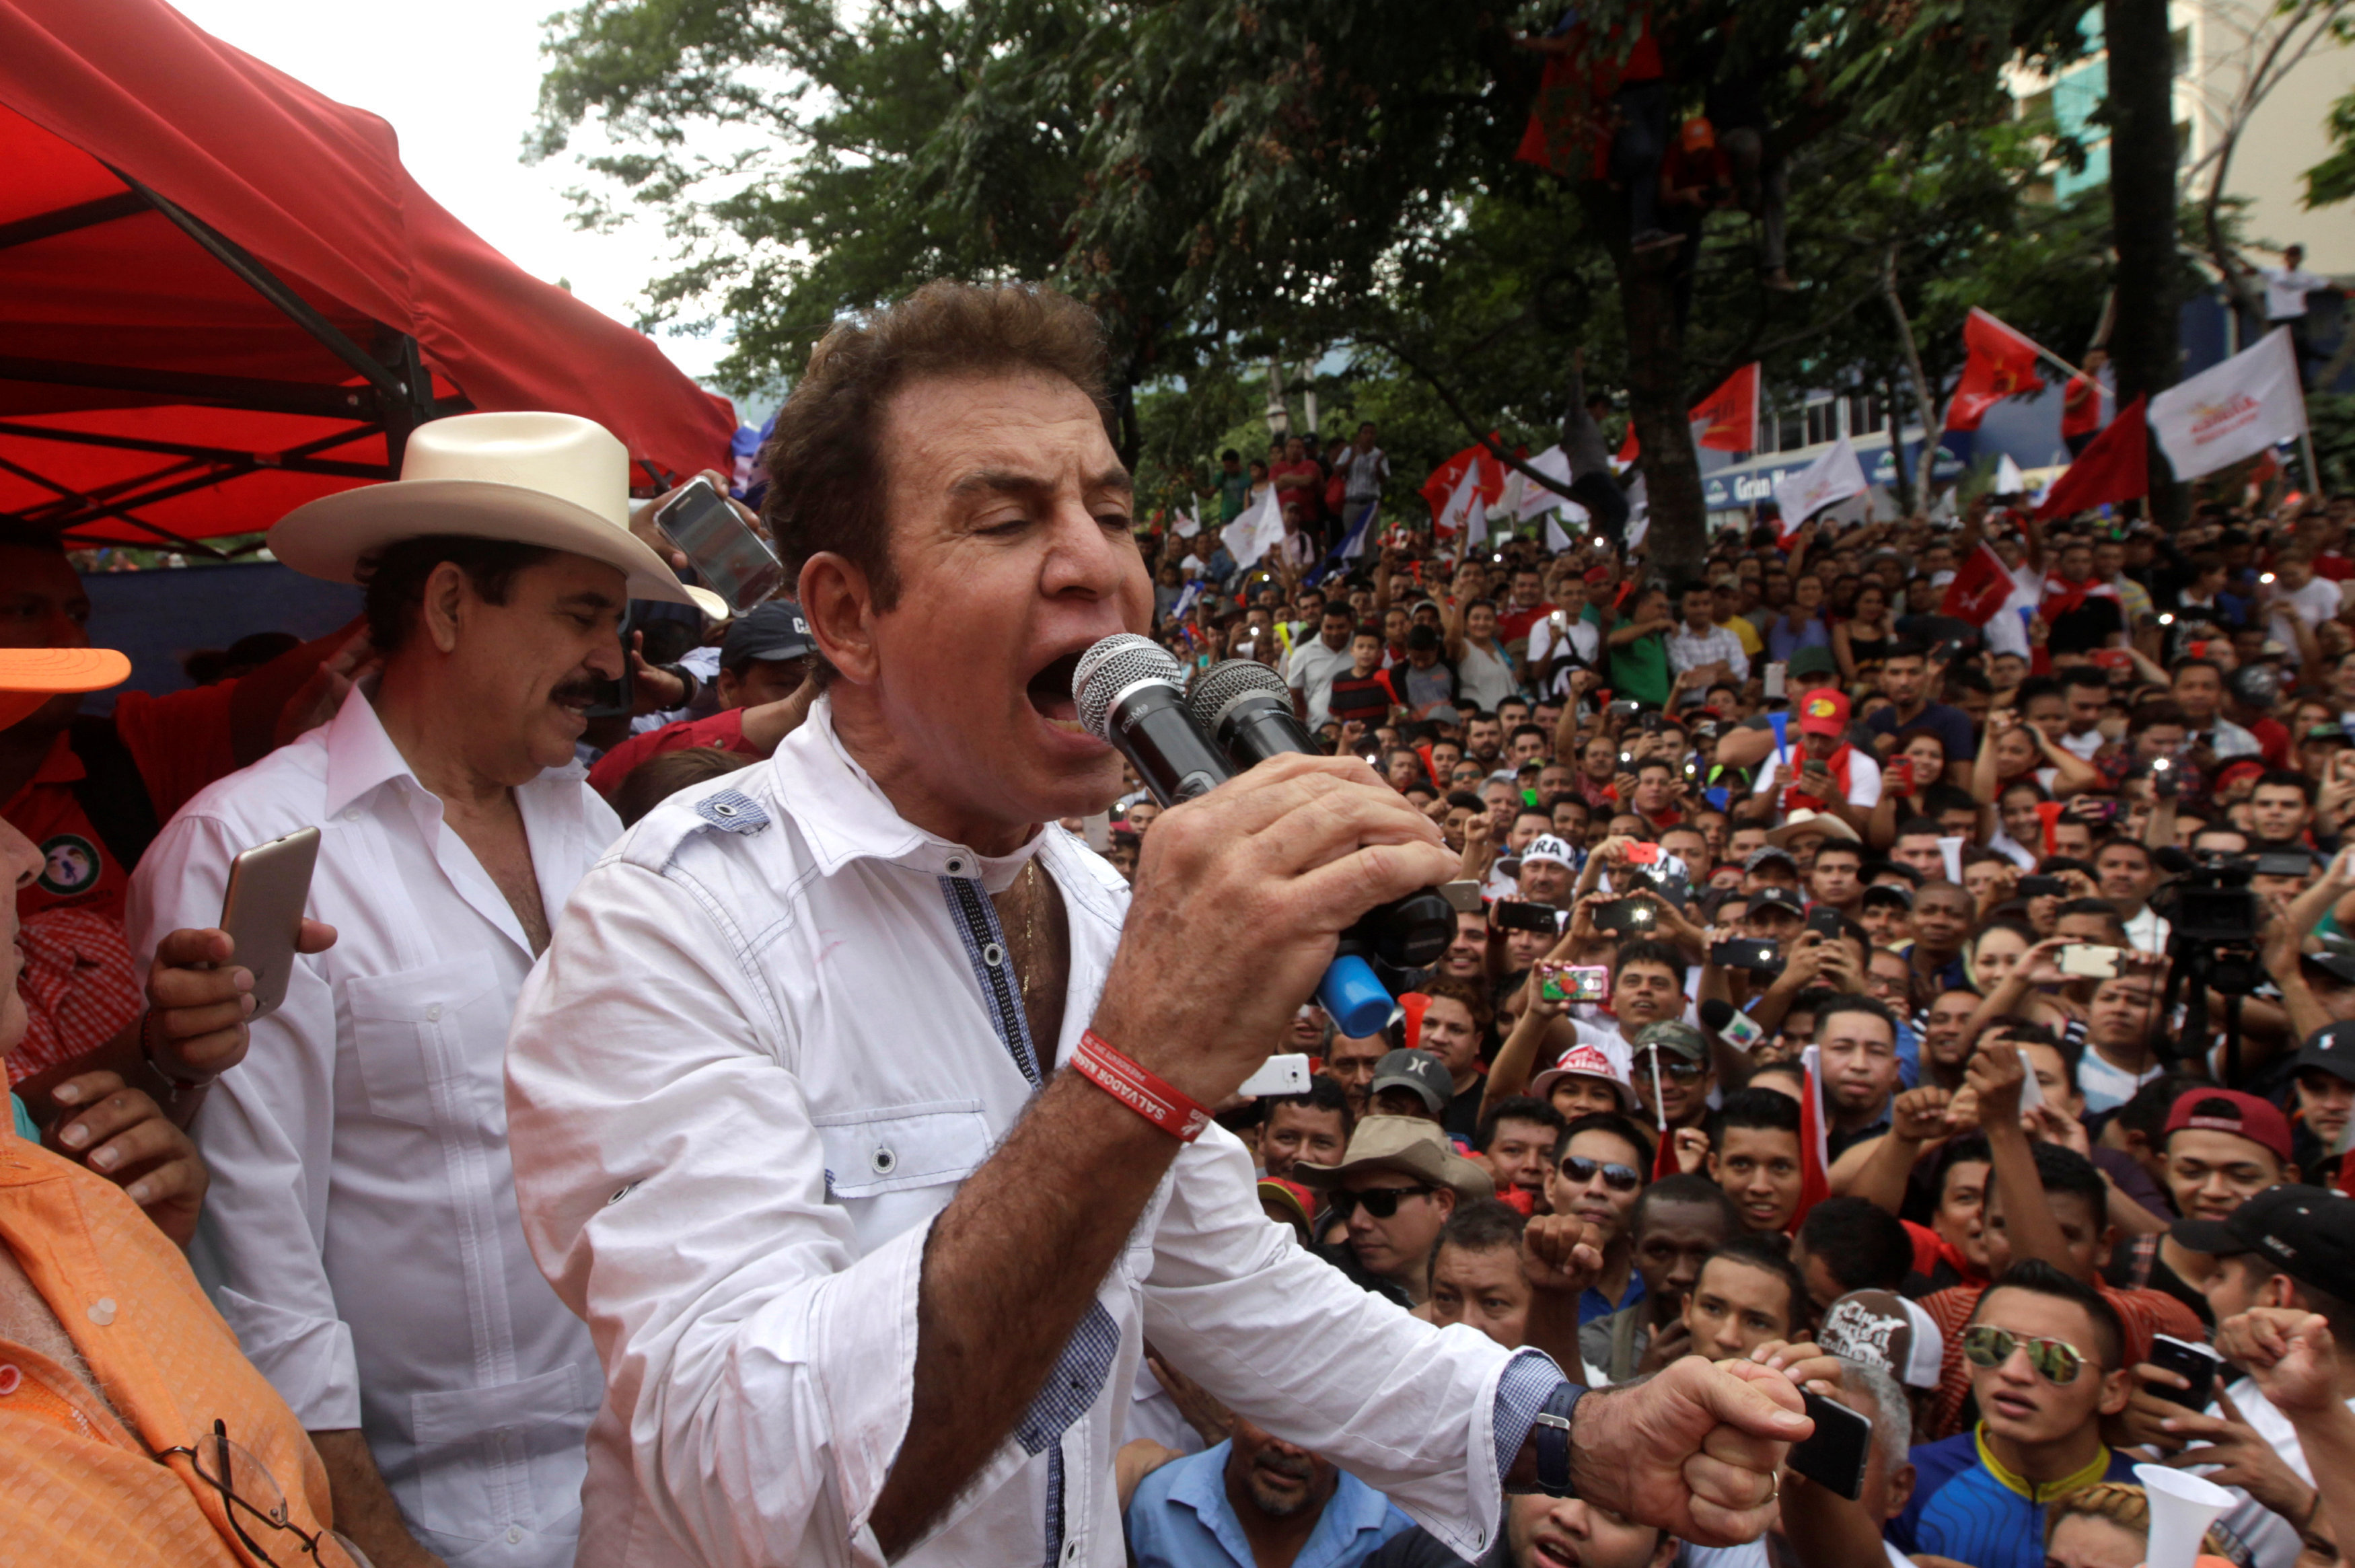 Opposition candidate Salvador Nasralla delivers a speech to his supporters during a march to protest against the results of Honduras' general elections in San Pedro Sula, Honduras January 6, 2018